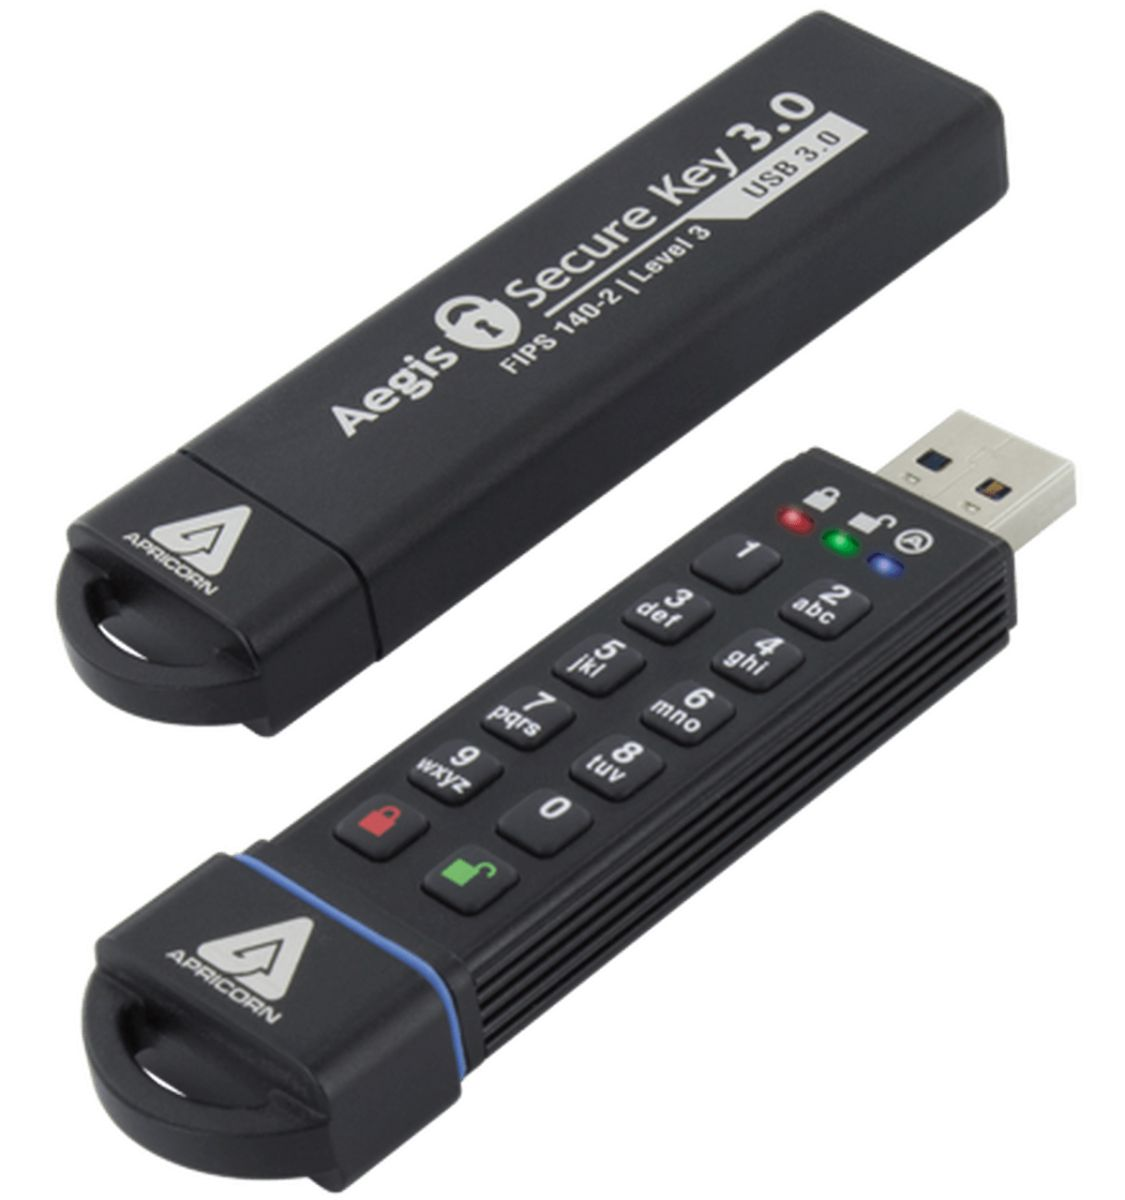 apricorn ask3 fips 30gb usbstick